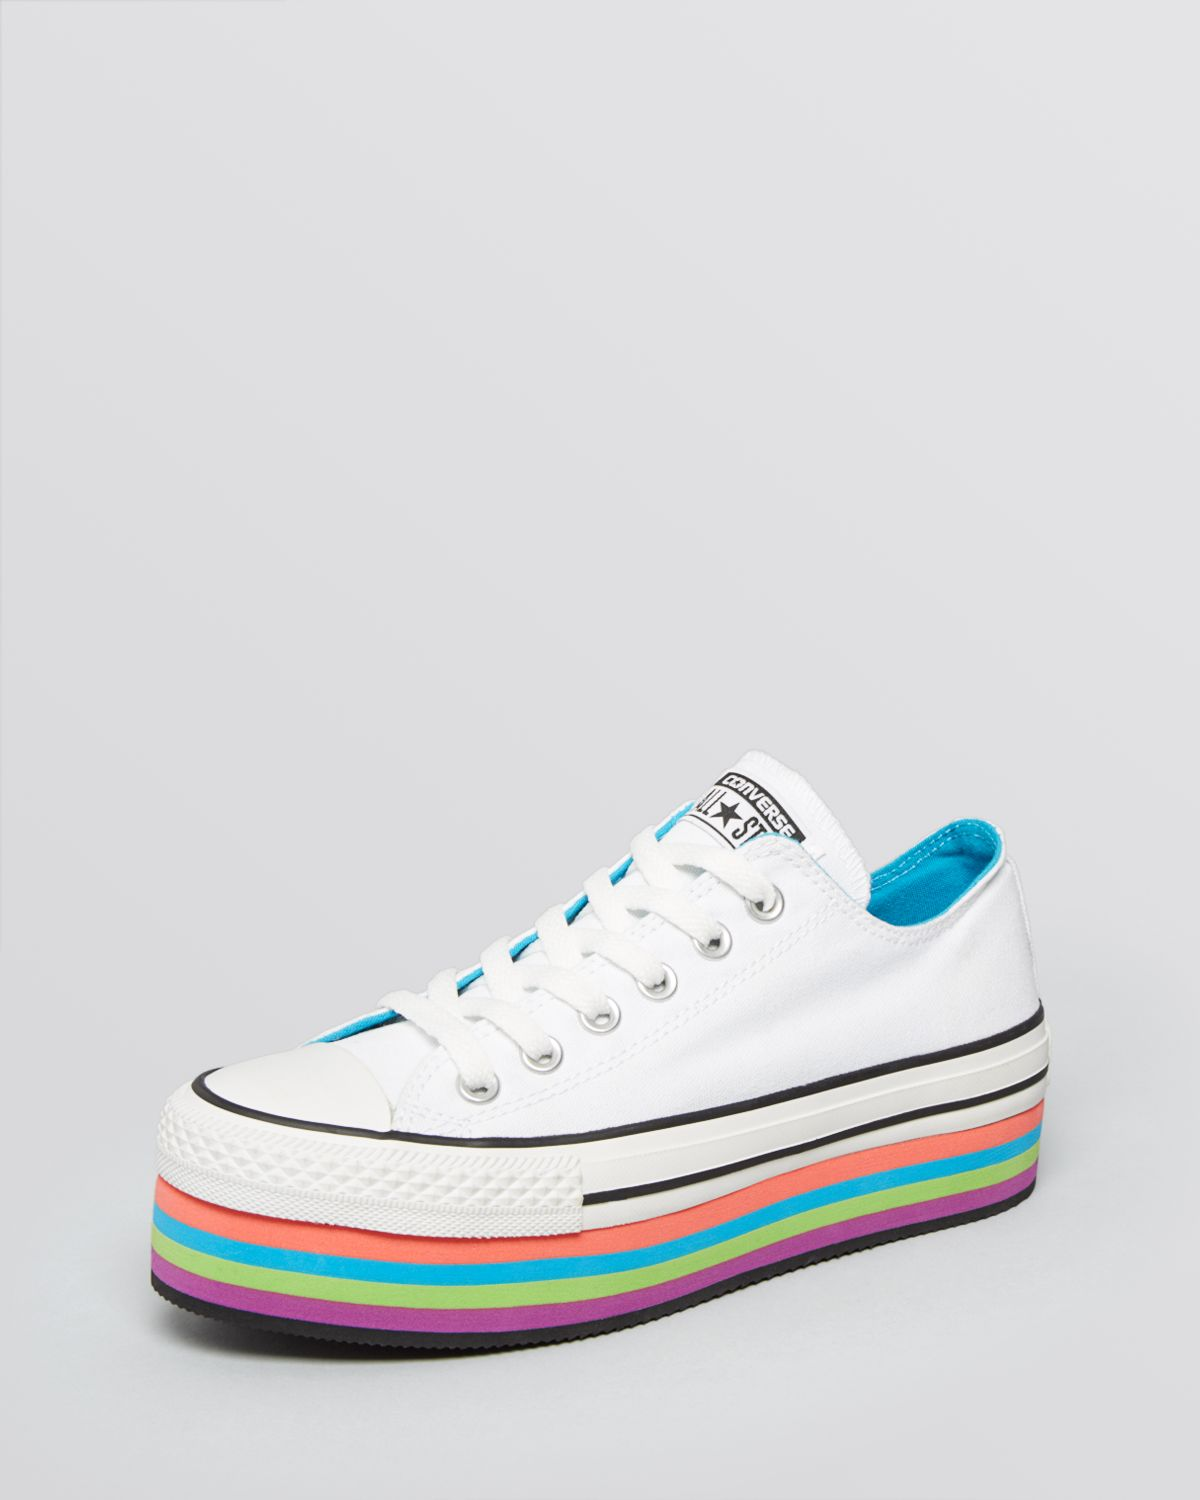 01ef46eef56f Converse Lace Up Platform Sneakers All Star Multicolor in White - Lyst